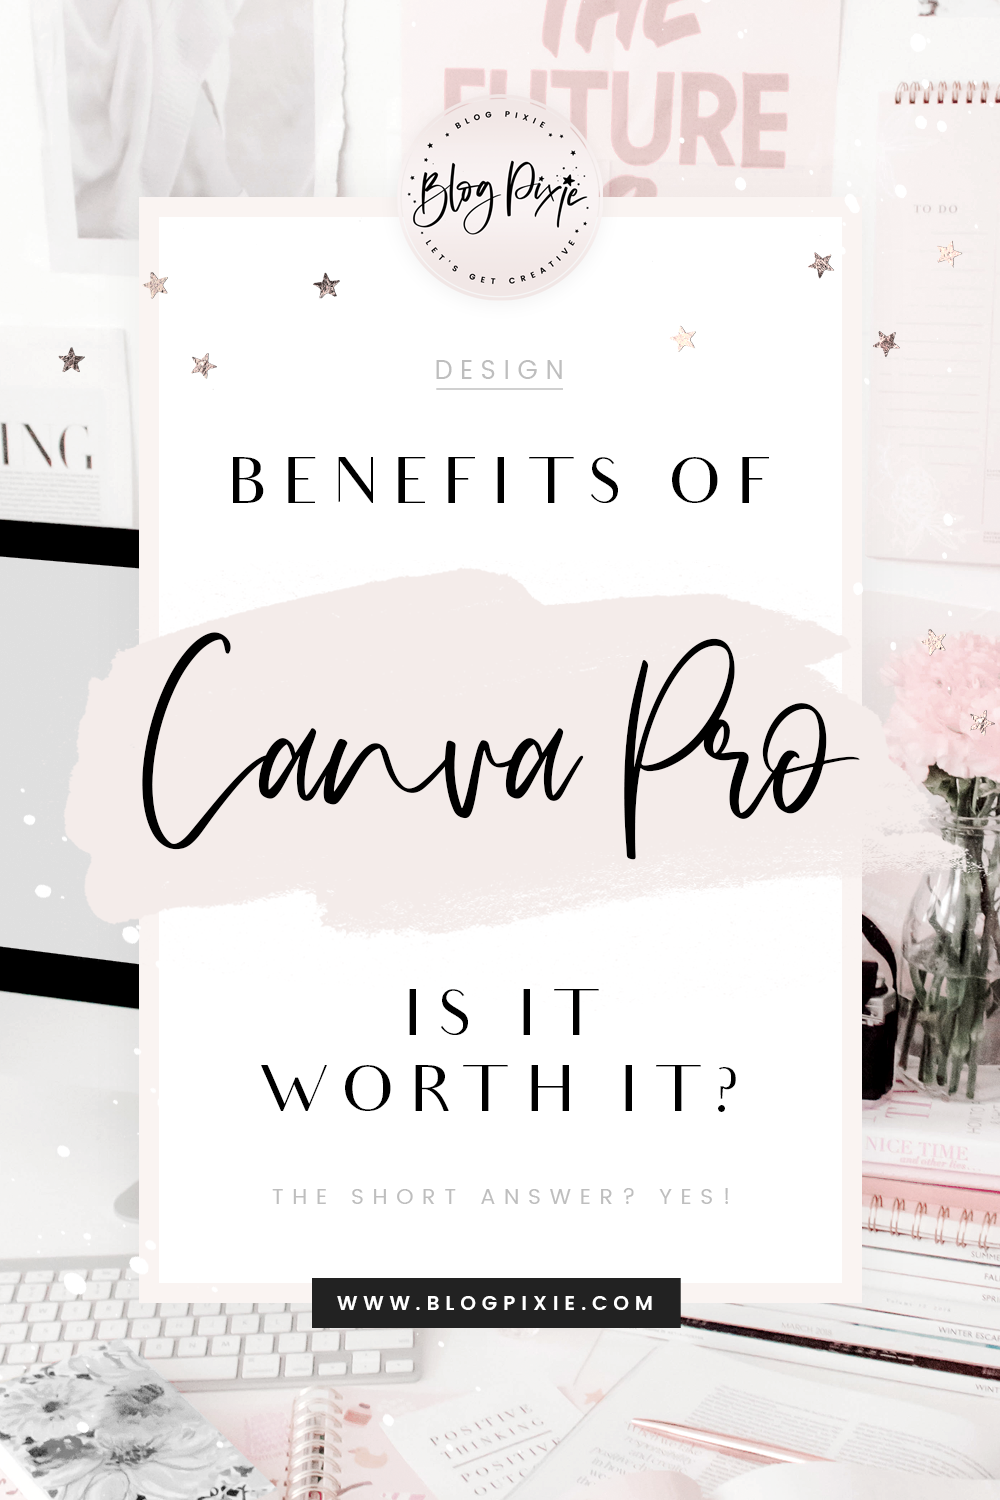 Canva Pro – Is It Worth It?